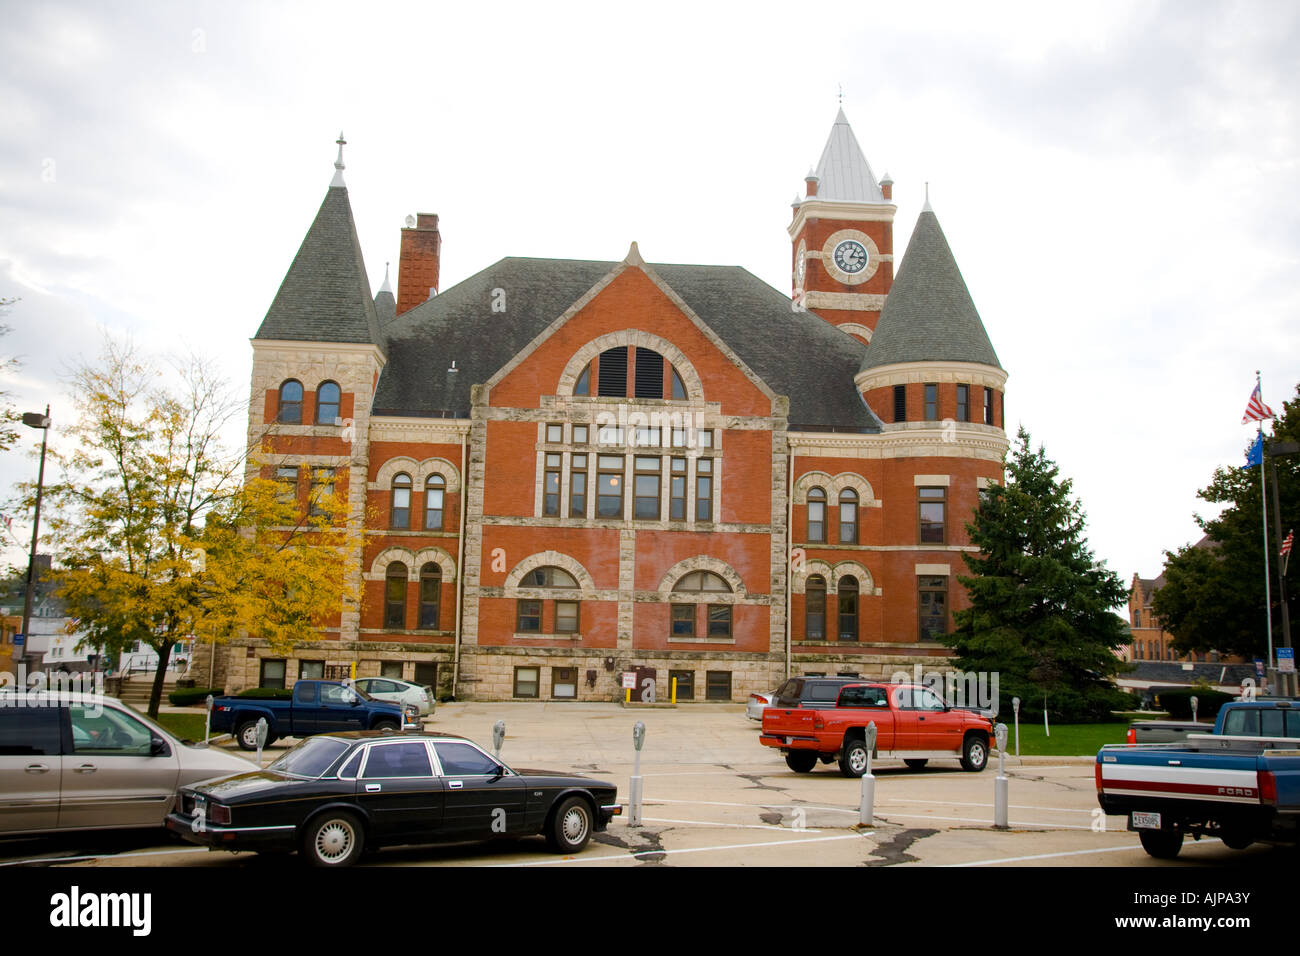 Court house city hall in the center of the town Monroe Wisconsin USA Stock Photo